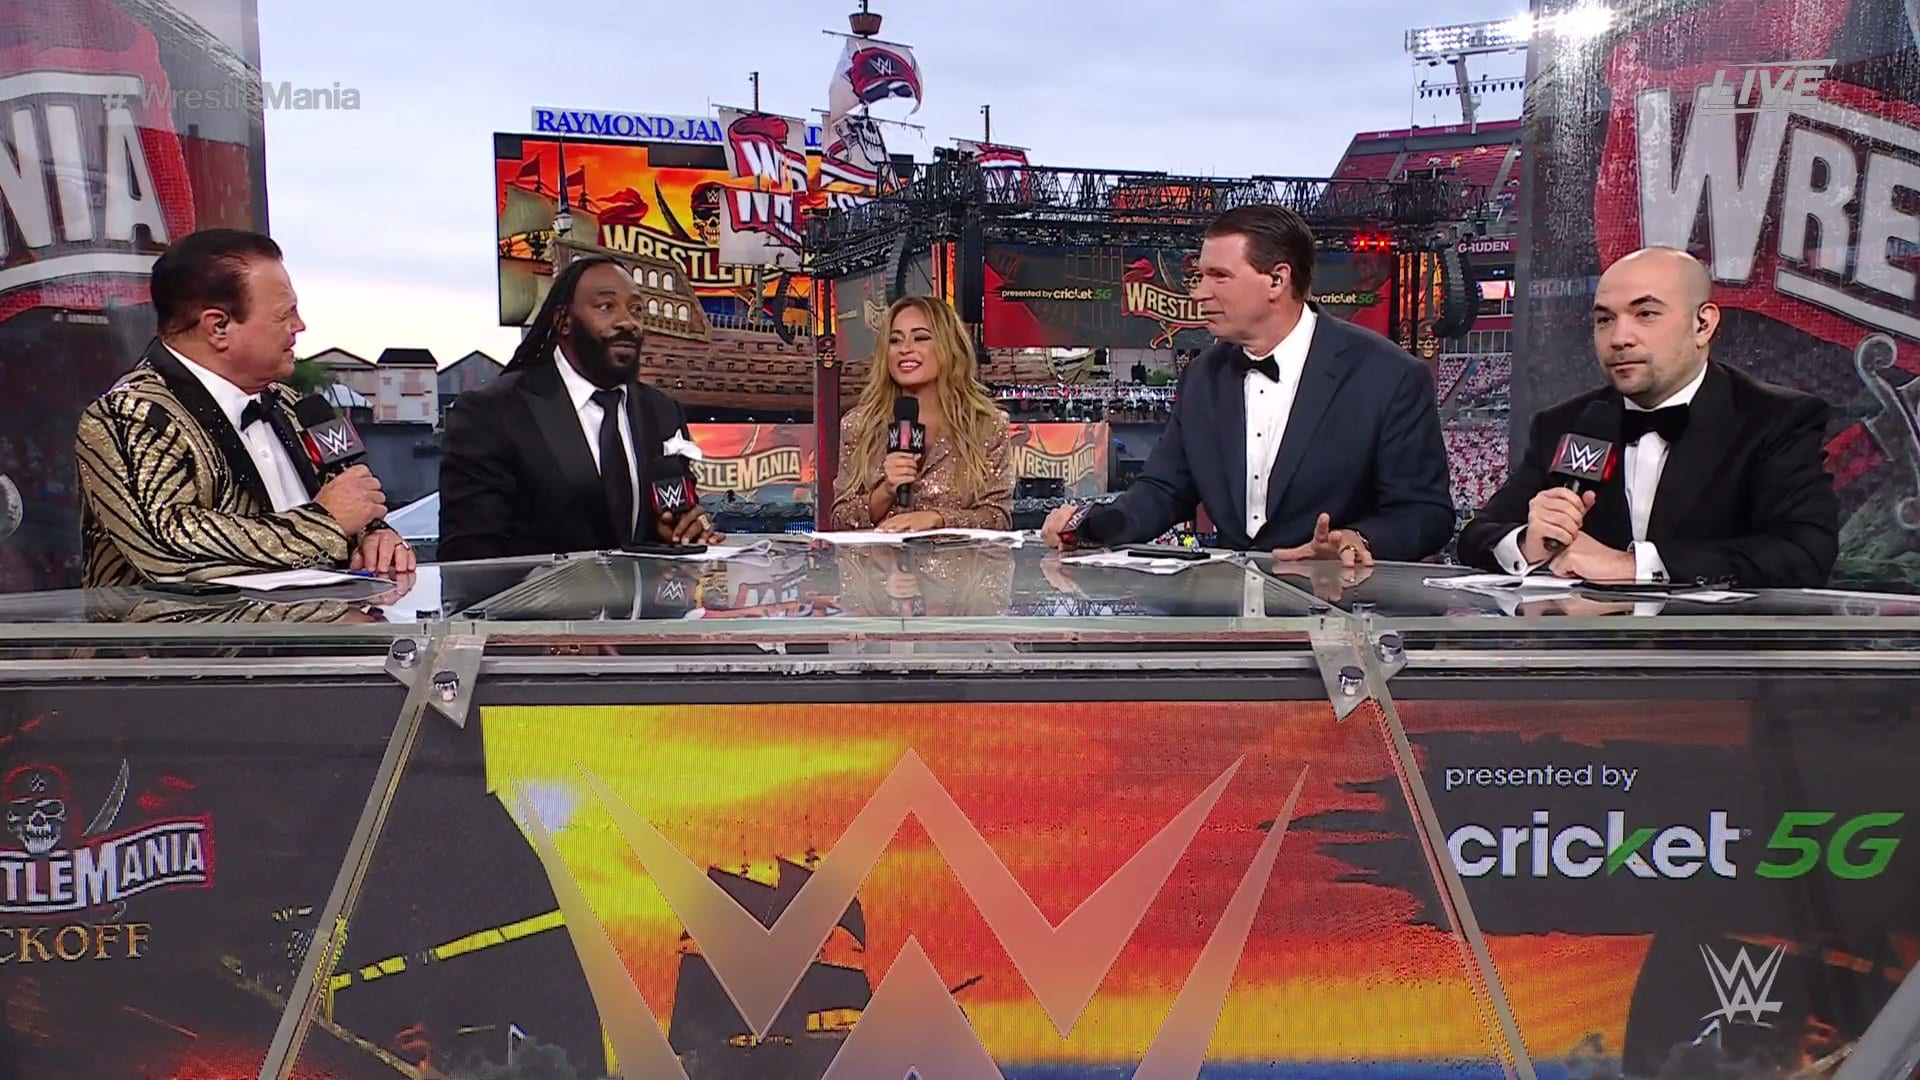 Opening Match Revealed For WrestleMania 37 Night Two, Weather Note, Kickoff Pre-show Video